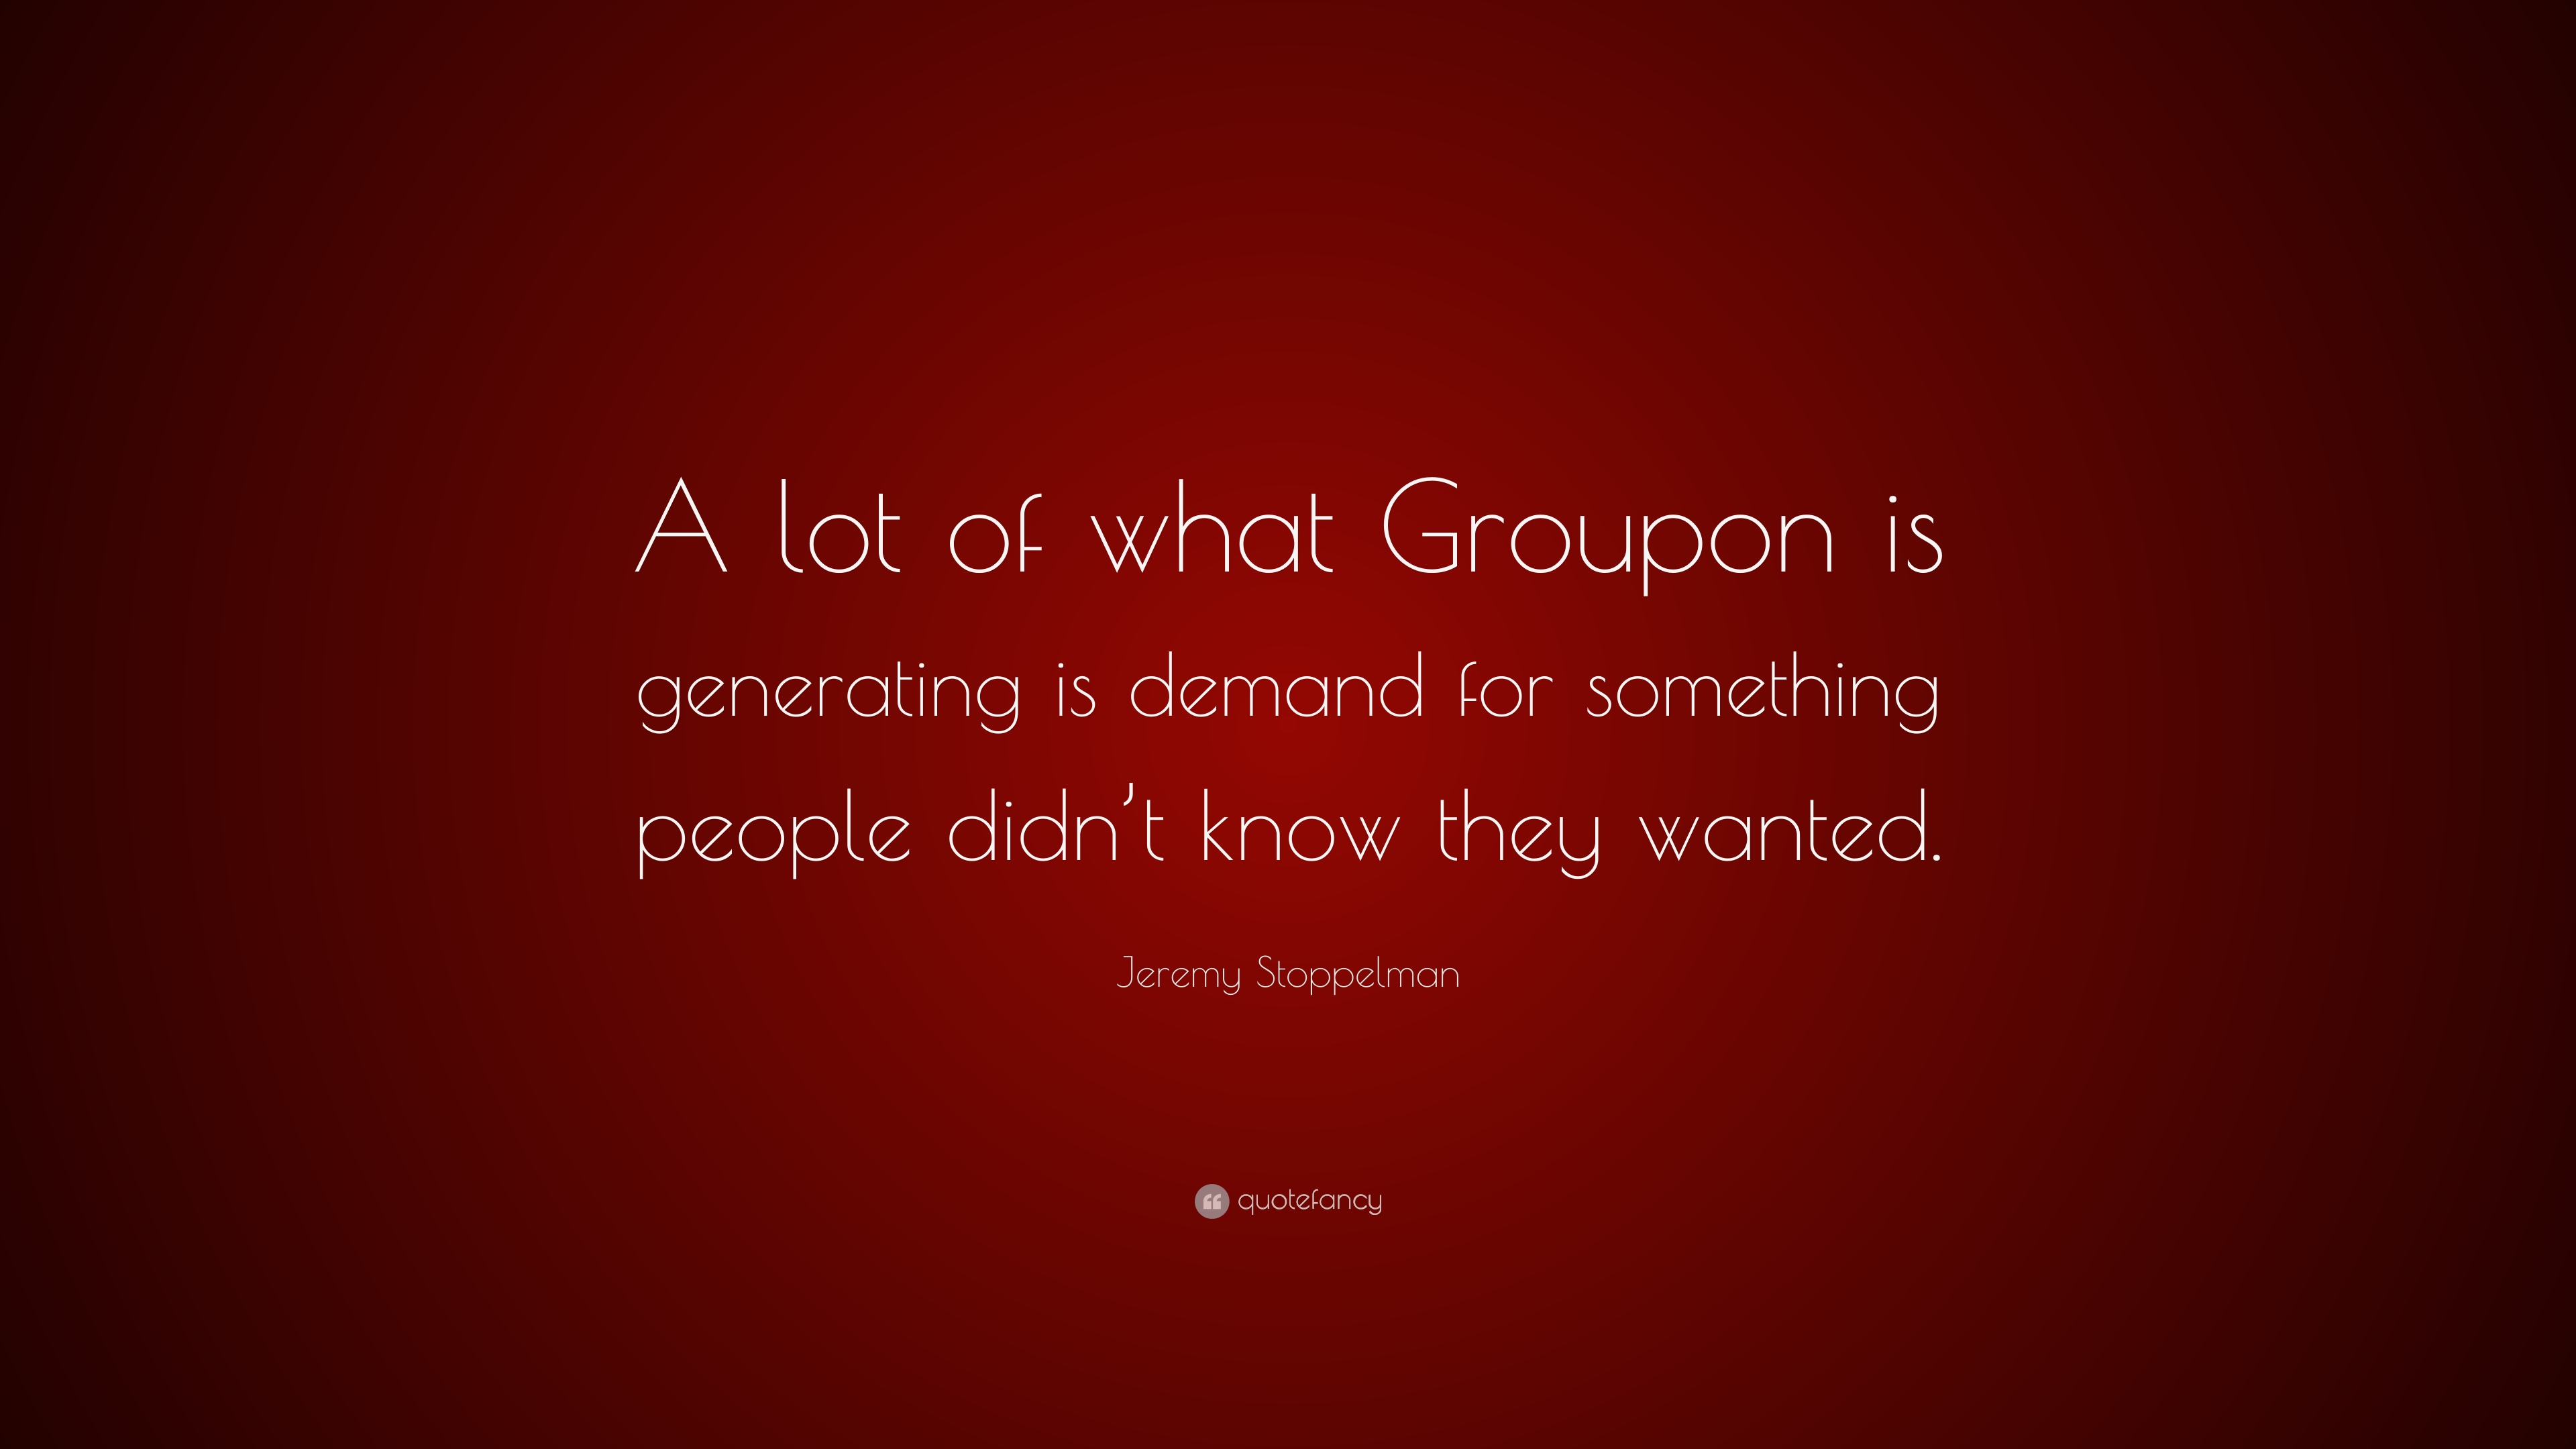 jeremy stoppelman quote a lot of what groupon is generating is